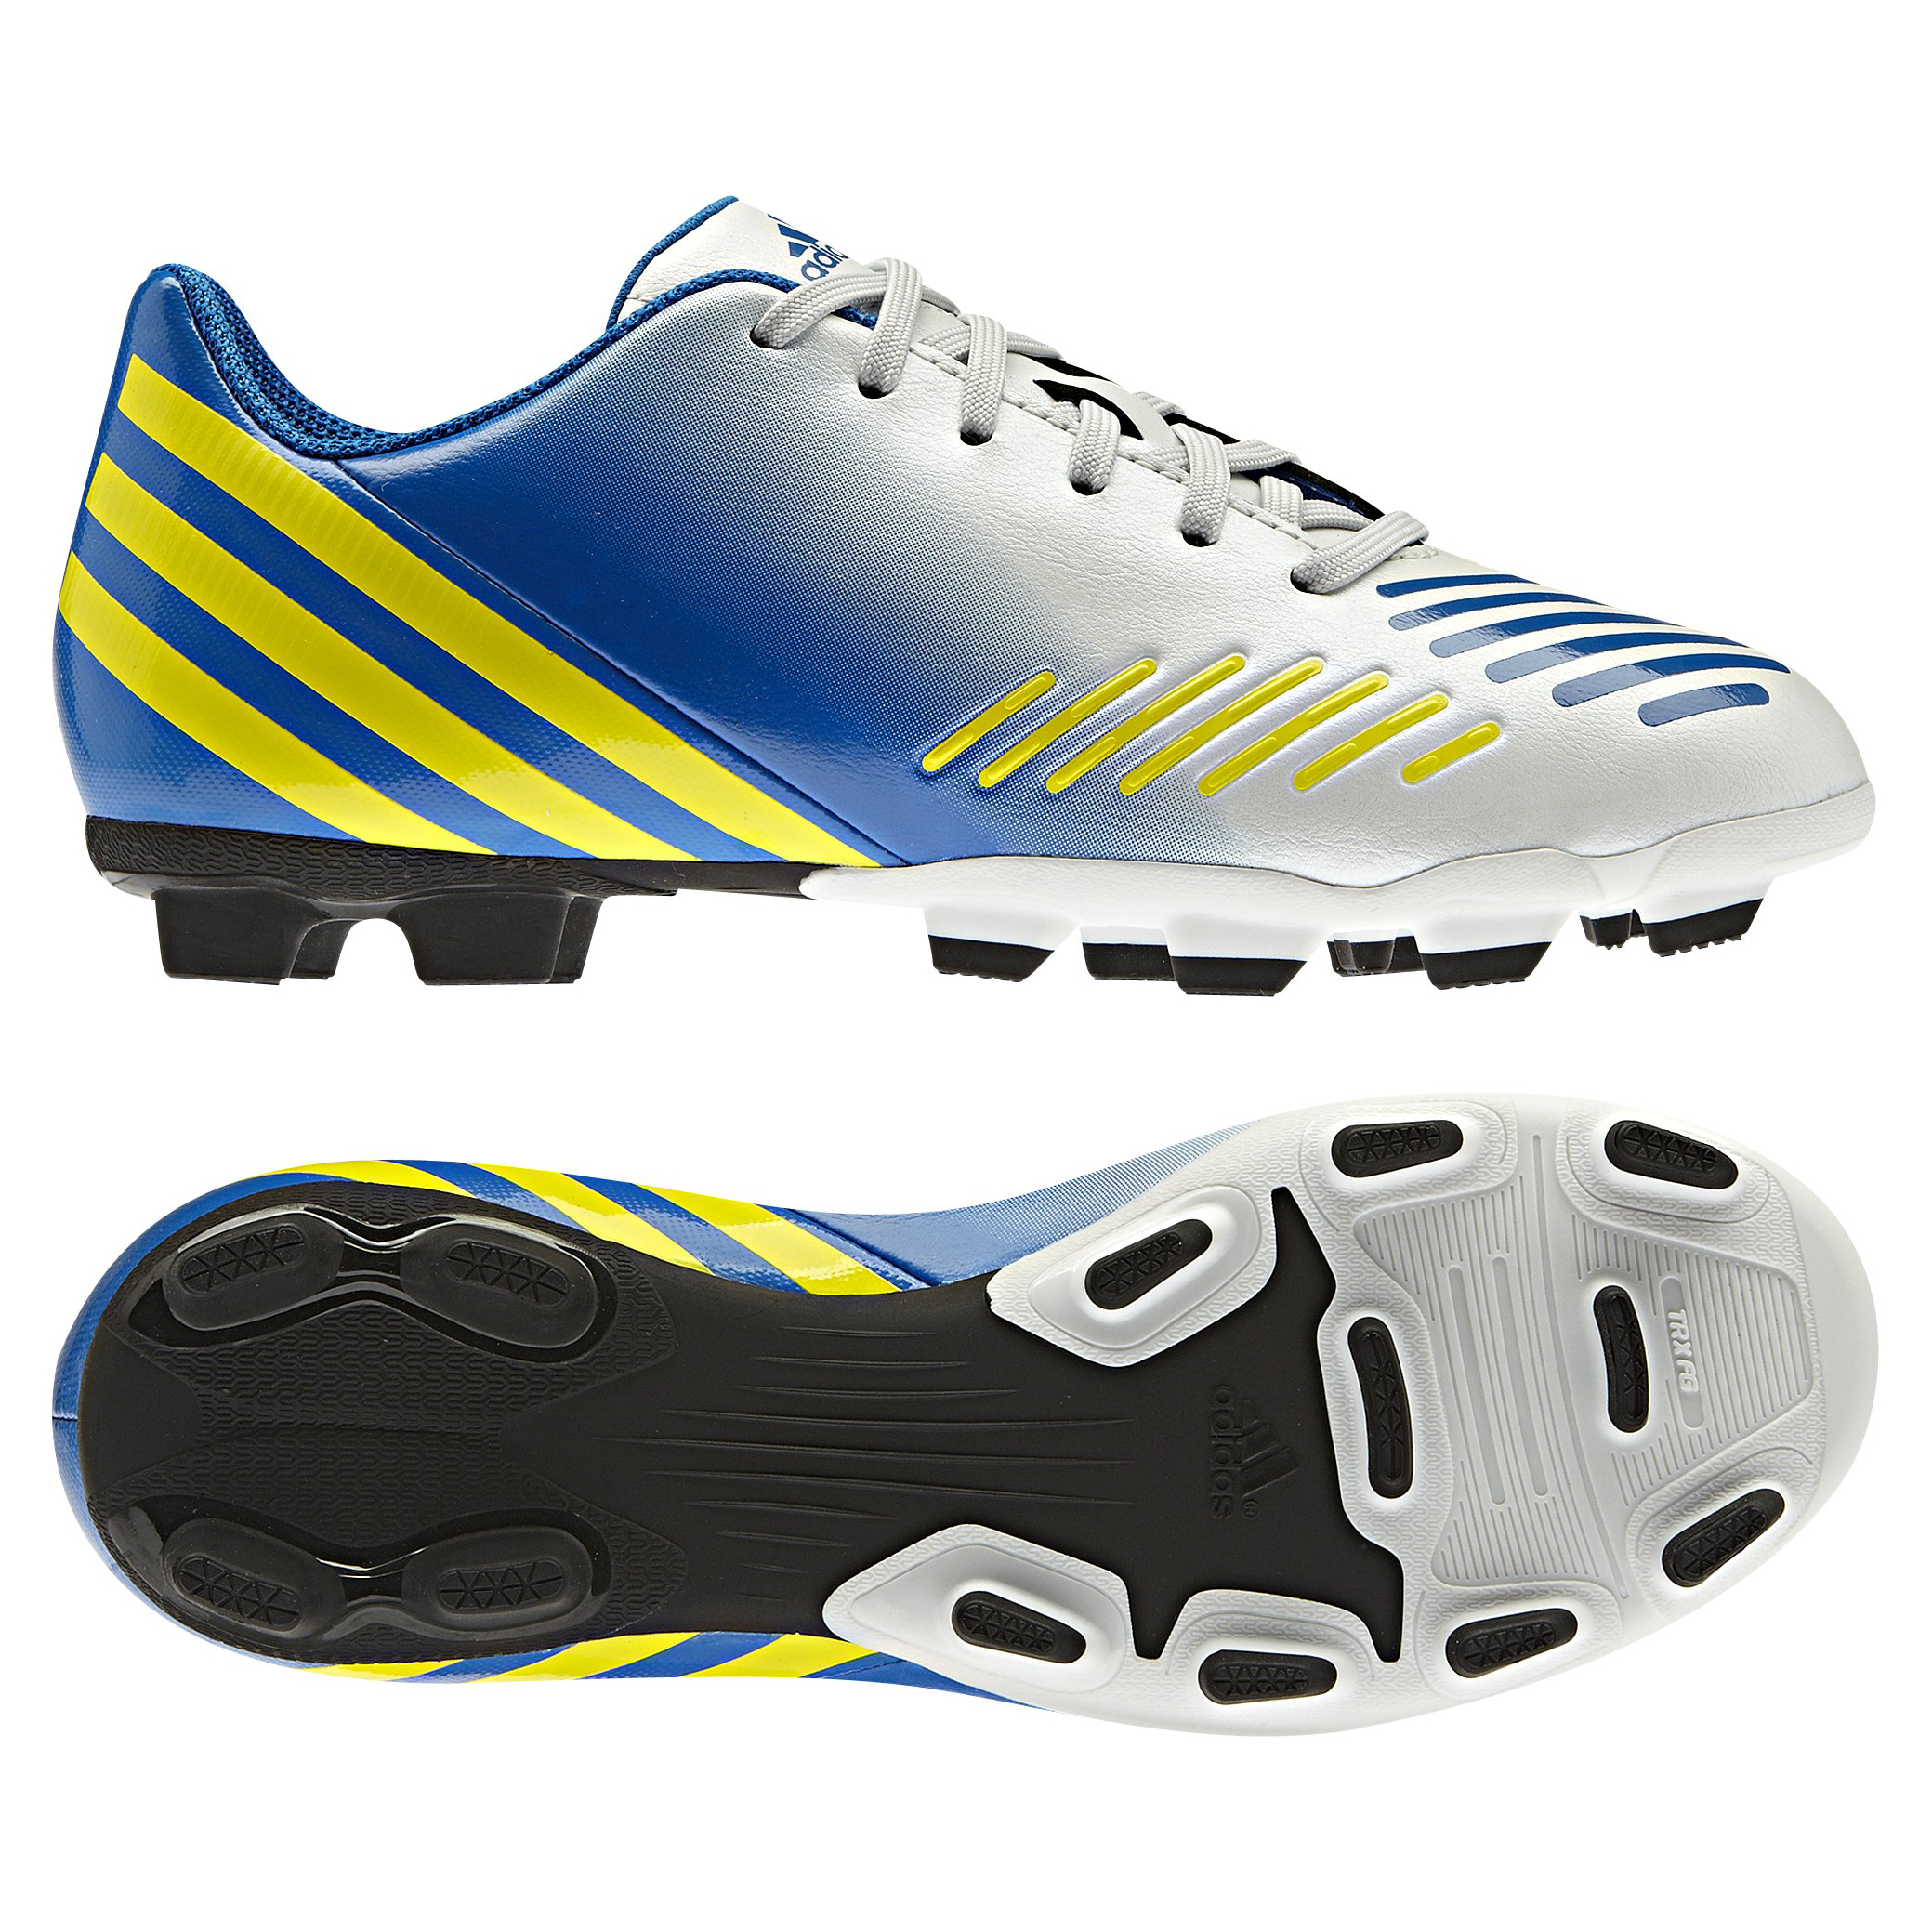 adidas Predito LZ TRX Firm Ground Football Boots - Running White/Vivid Yellow/Prime Blue - Kids